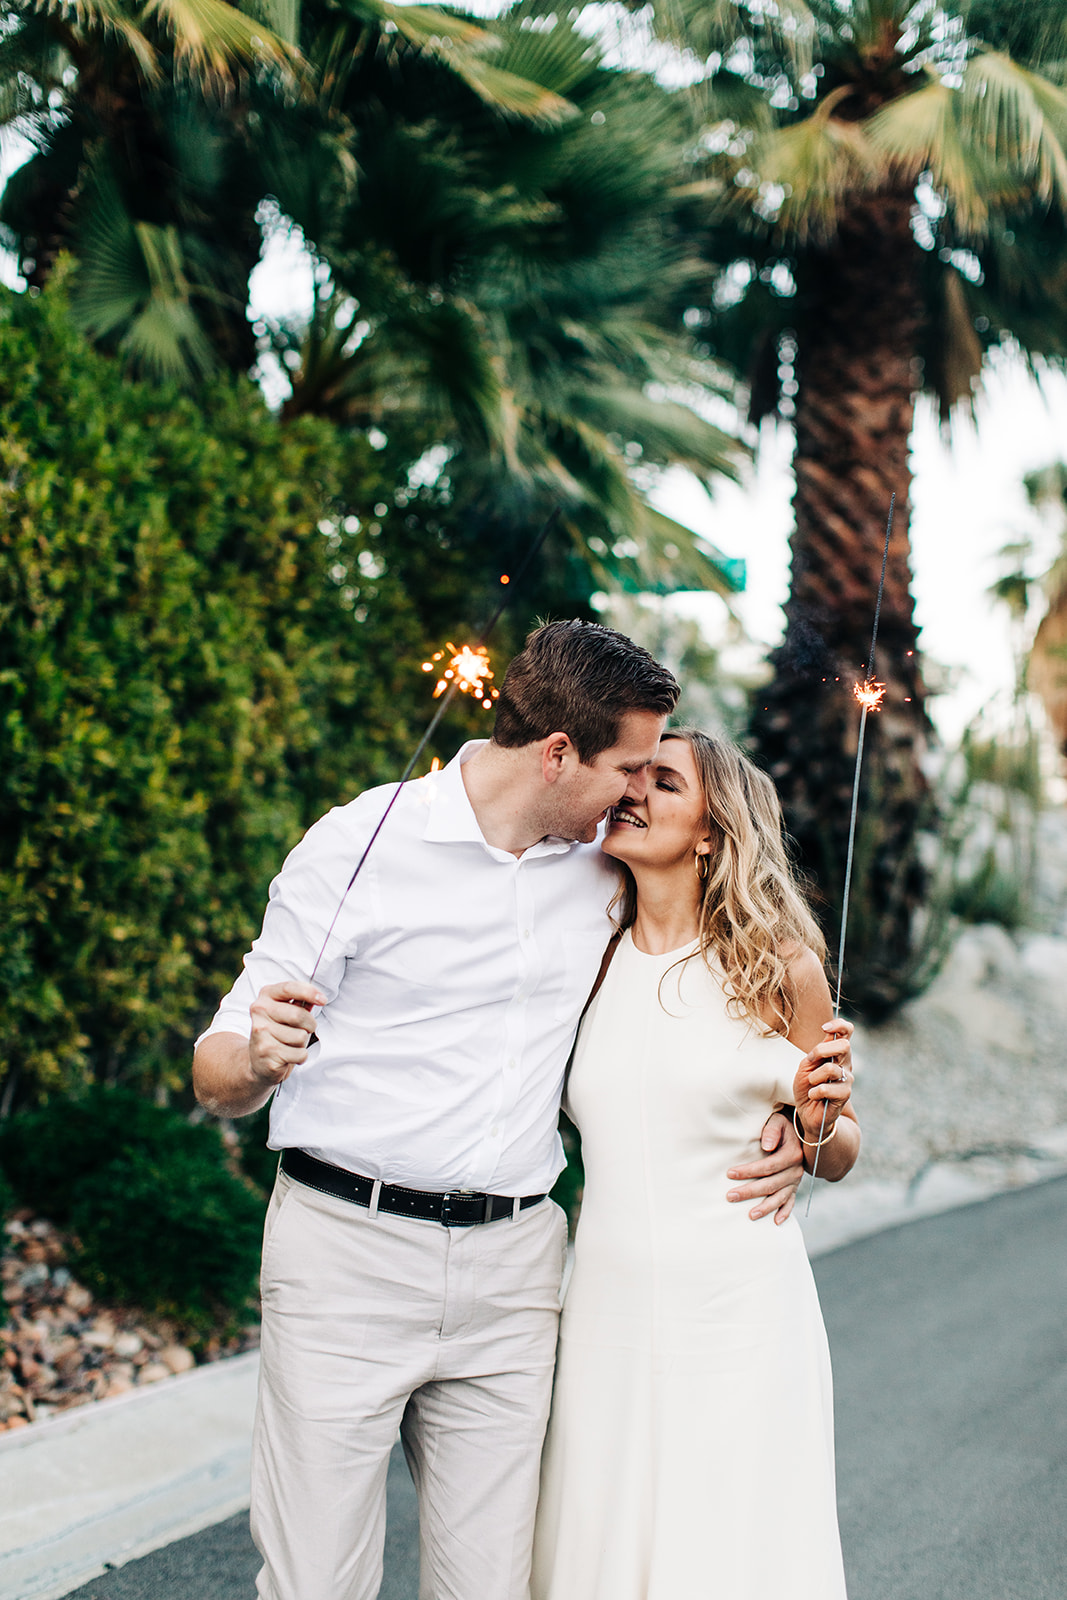 Paulina-Drew_Palm-Springs-Engagement-Photos_Clarisse-Rae_Southern-California-Wedding-Photographer-51